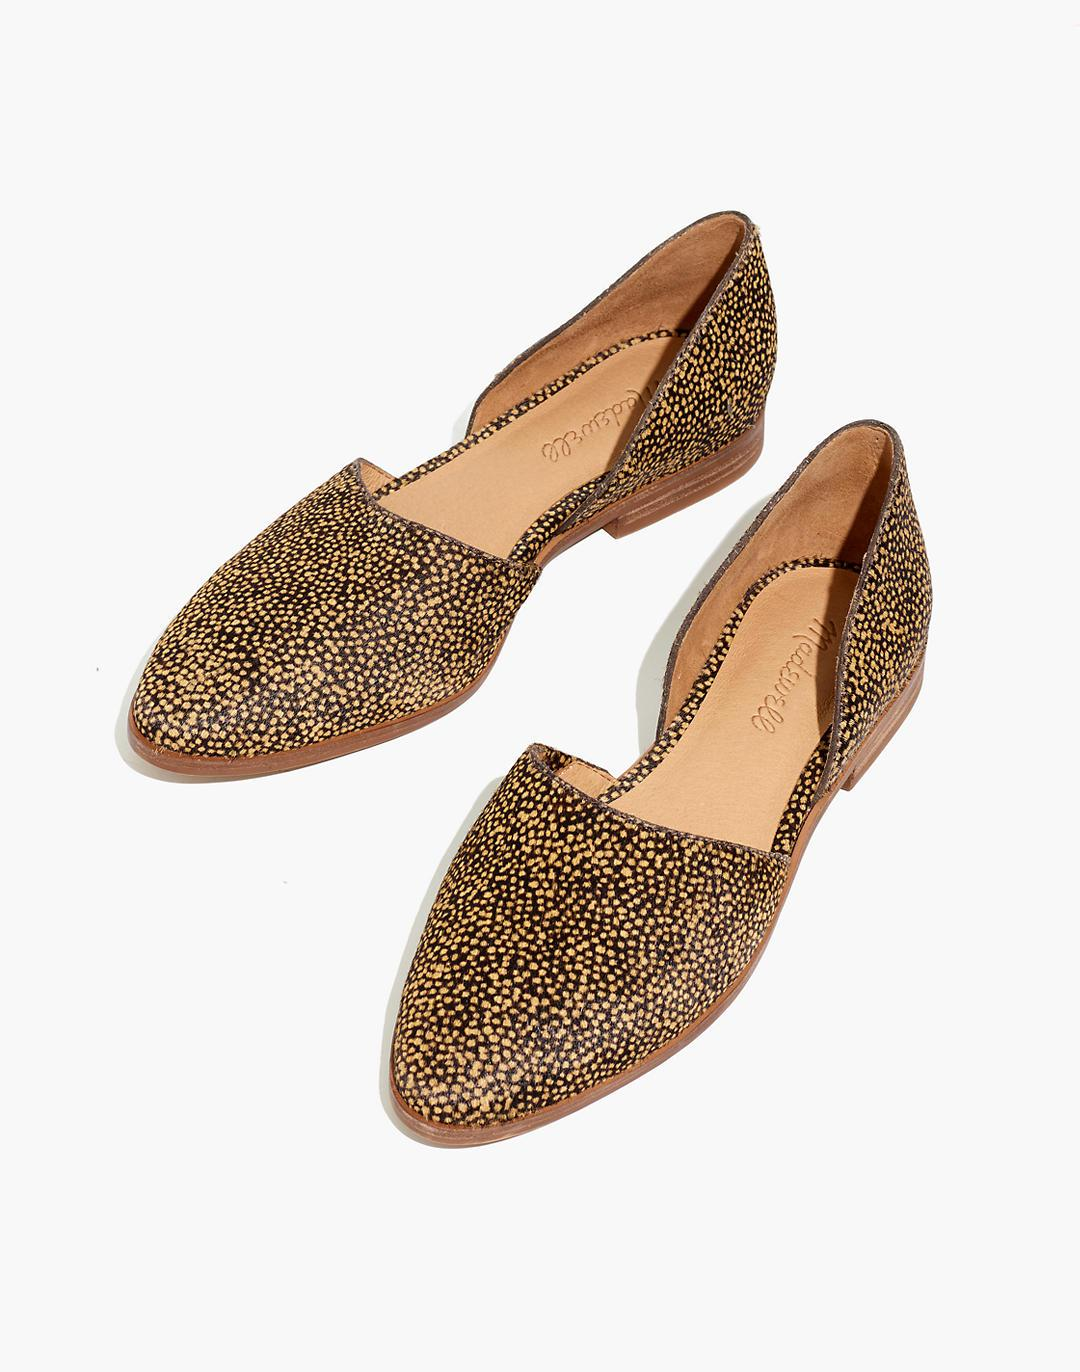 The Marisa d'Orsay Flat in Spotted Calf Hair